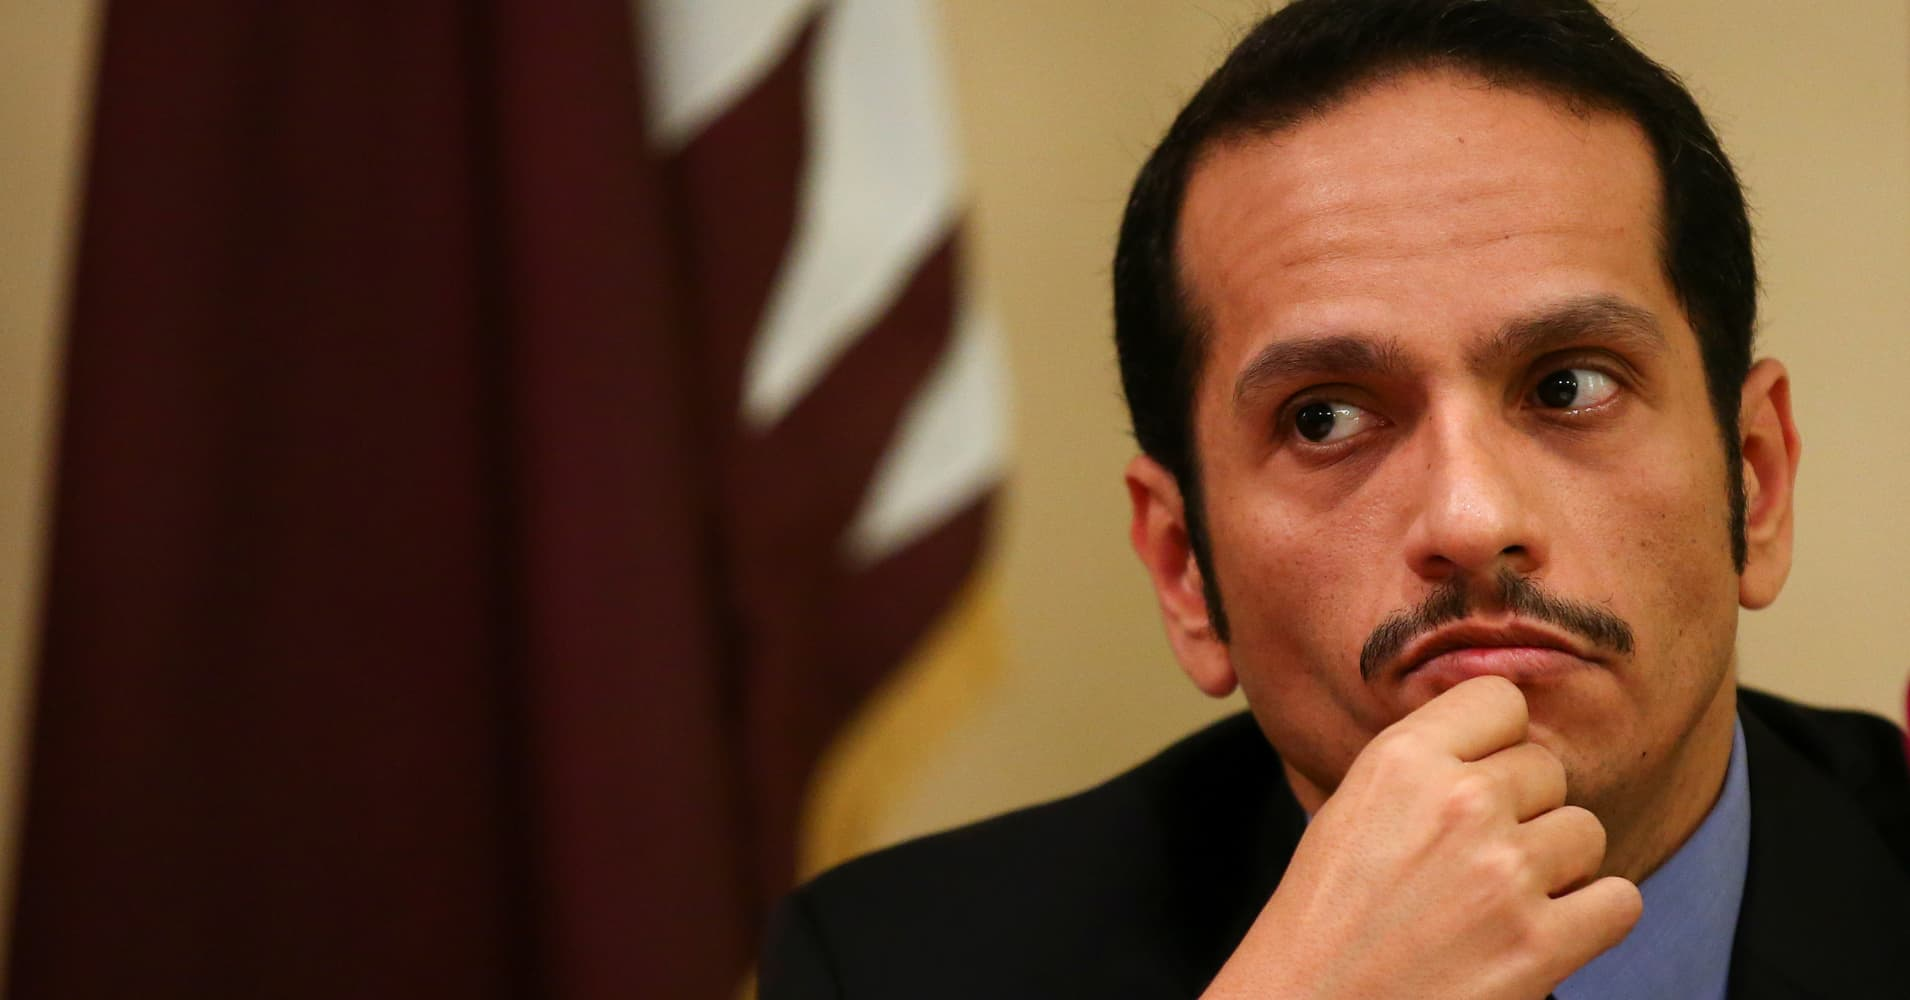 Qatar is 'counting on' Kuwait and other allies to resolve Gulf crisis, foreign minister says